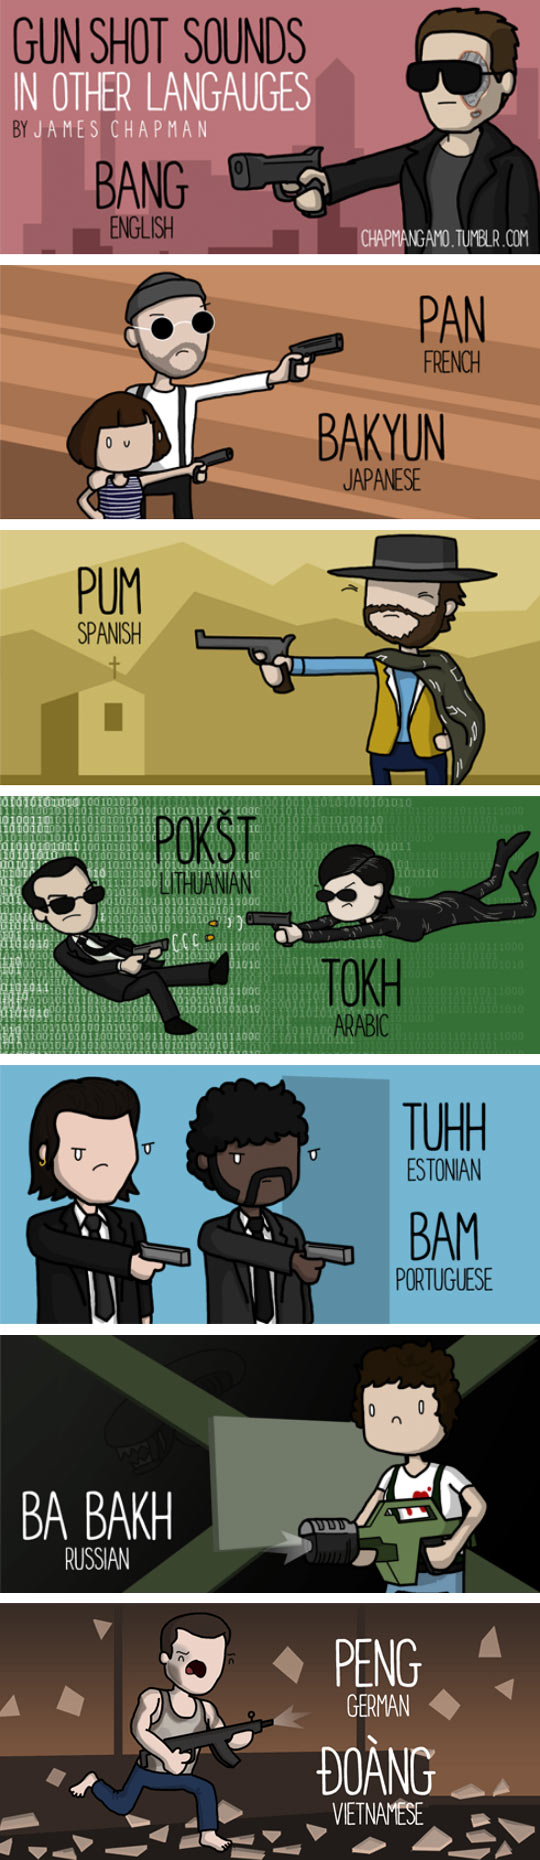 funny-shot-sounds-movies-comic